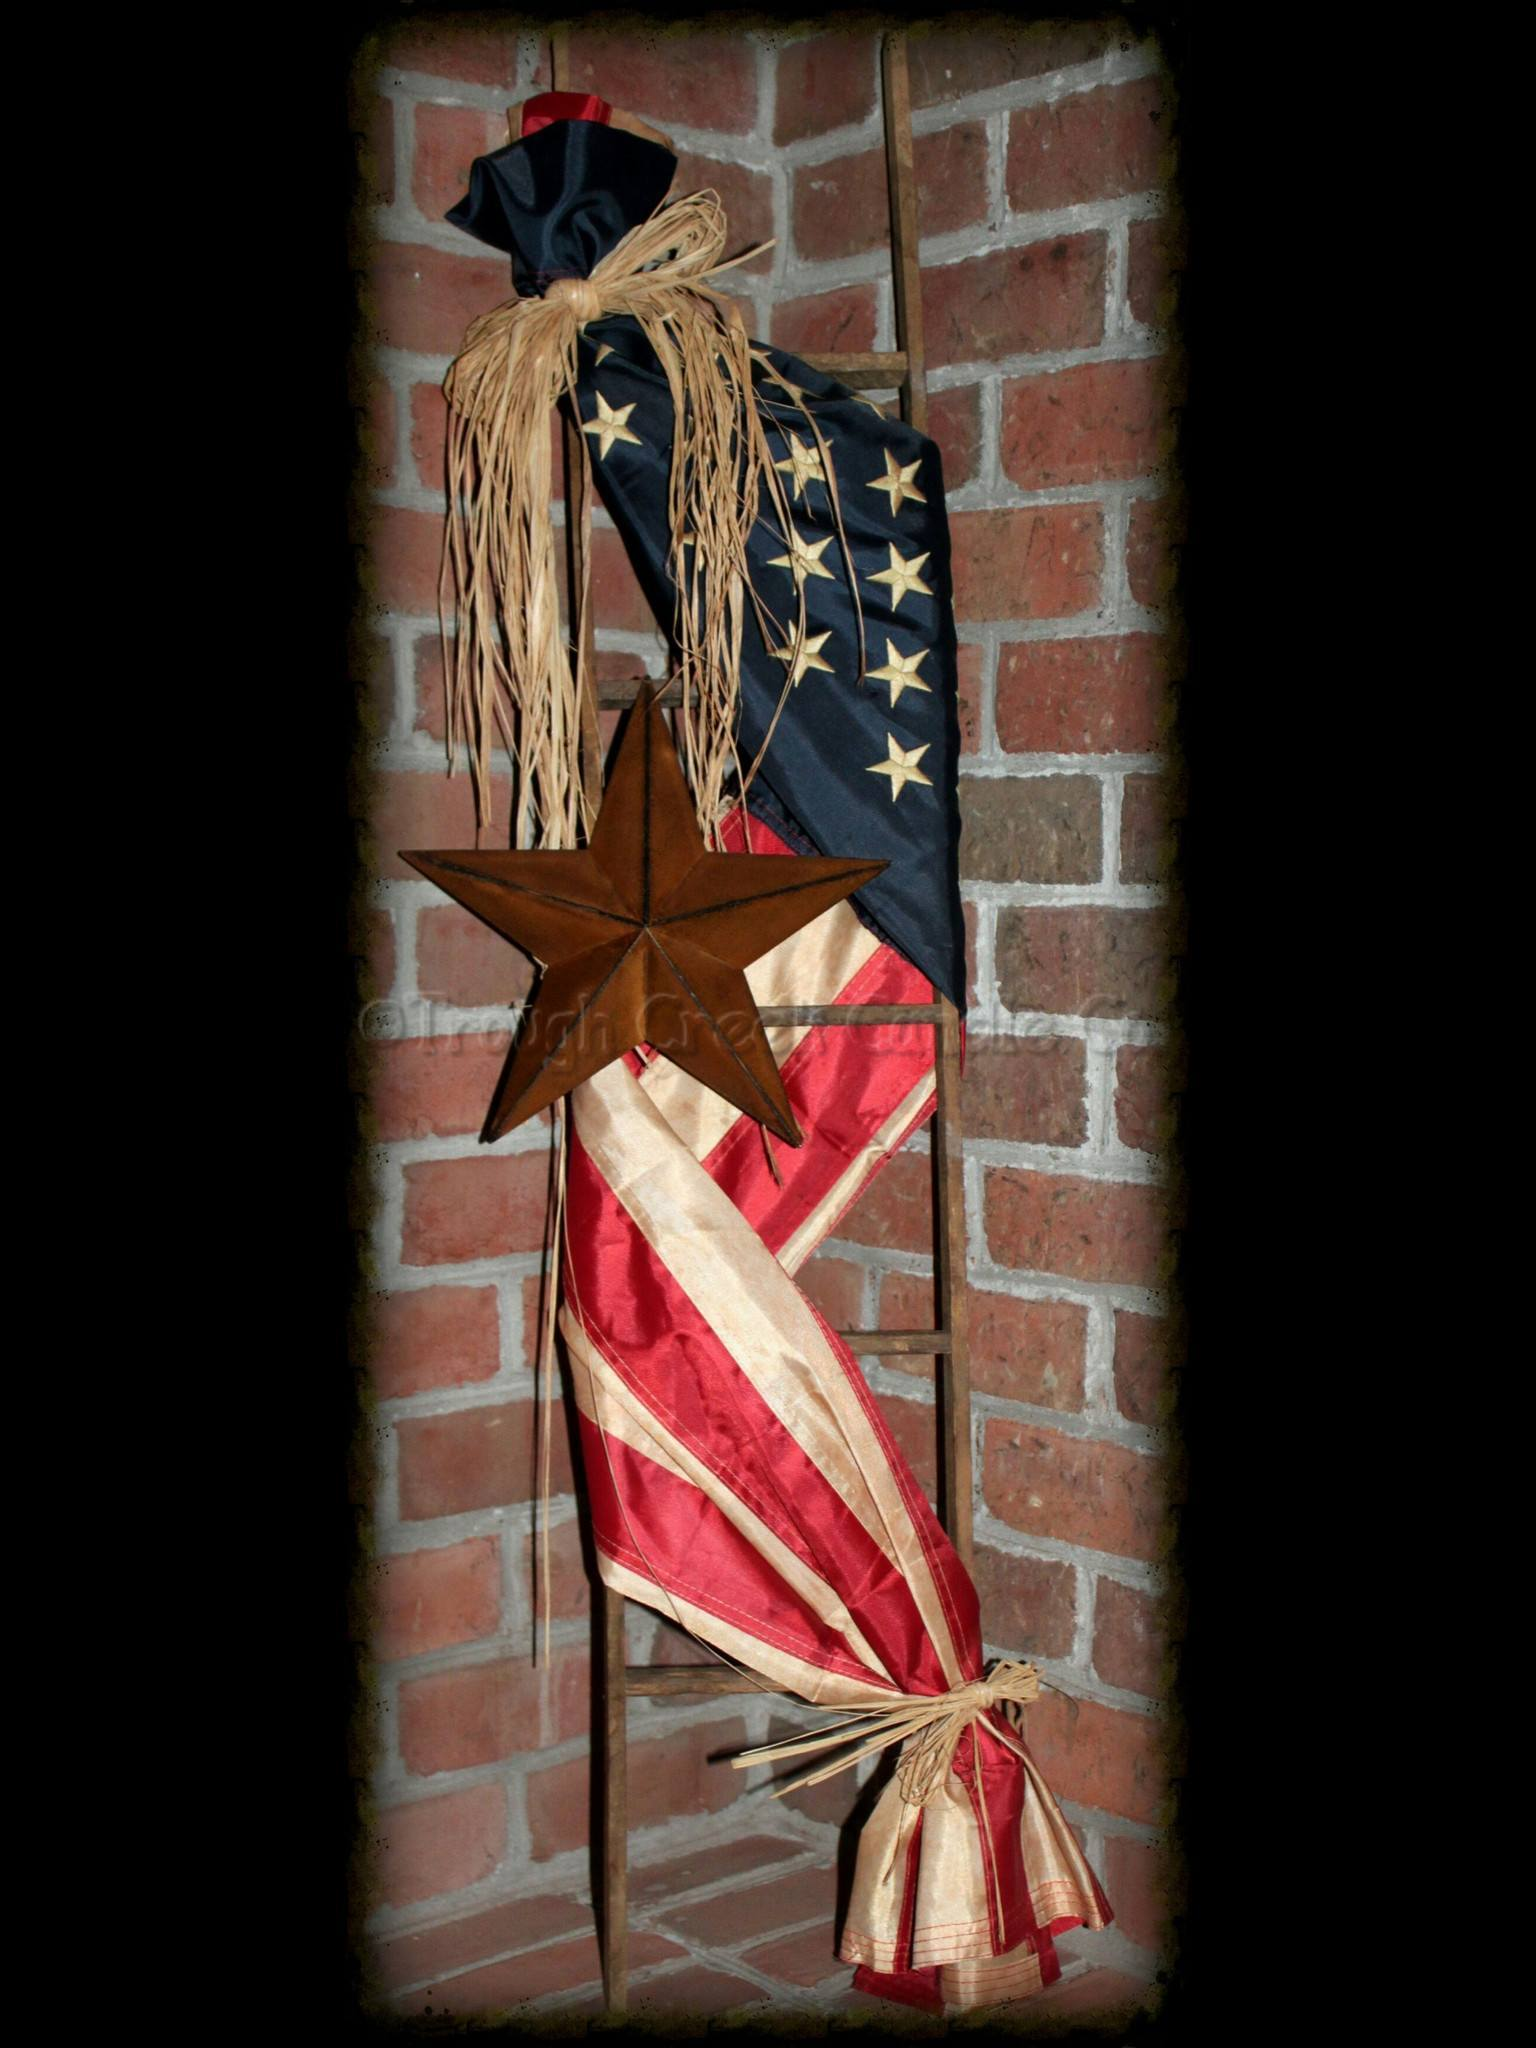 Replica Americana Flag Tobacco Lath Ladder with Rusty Tin Star - Especially For You Home Decor